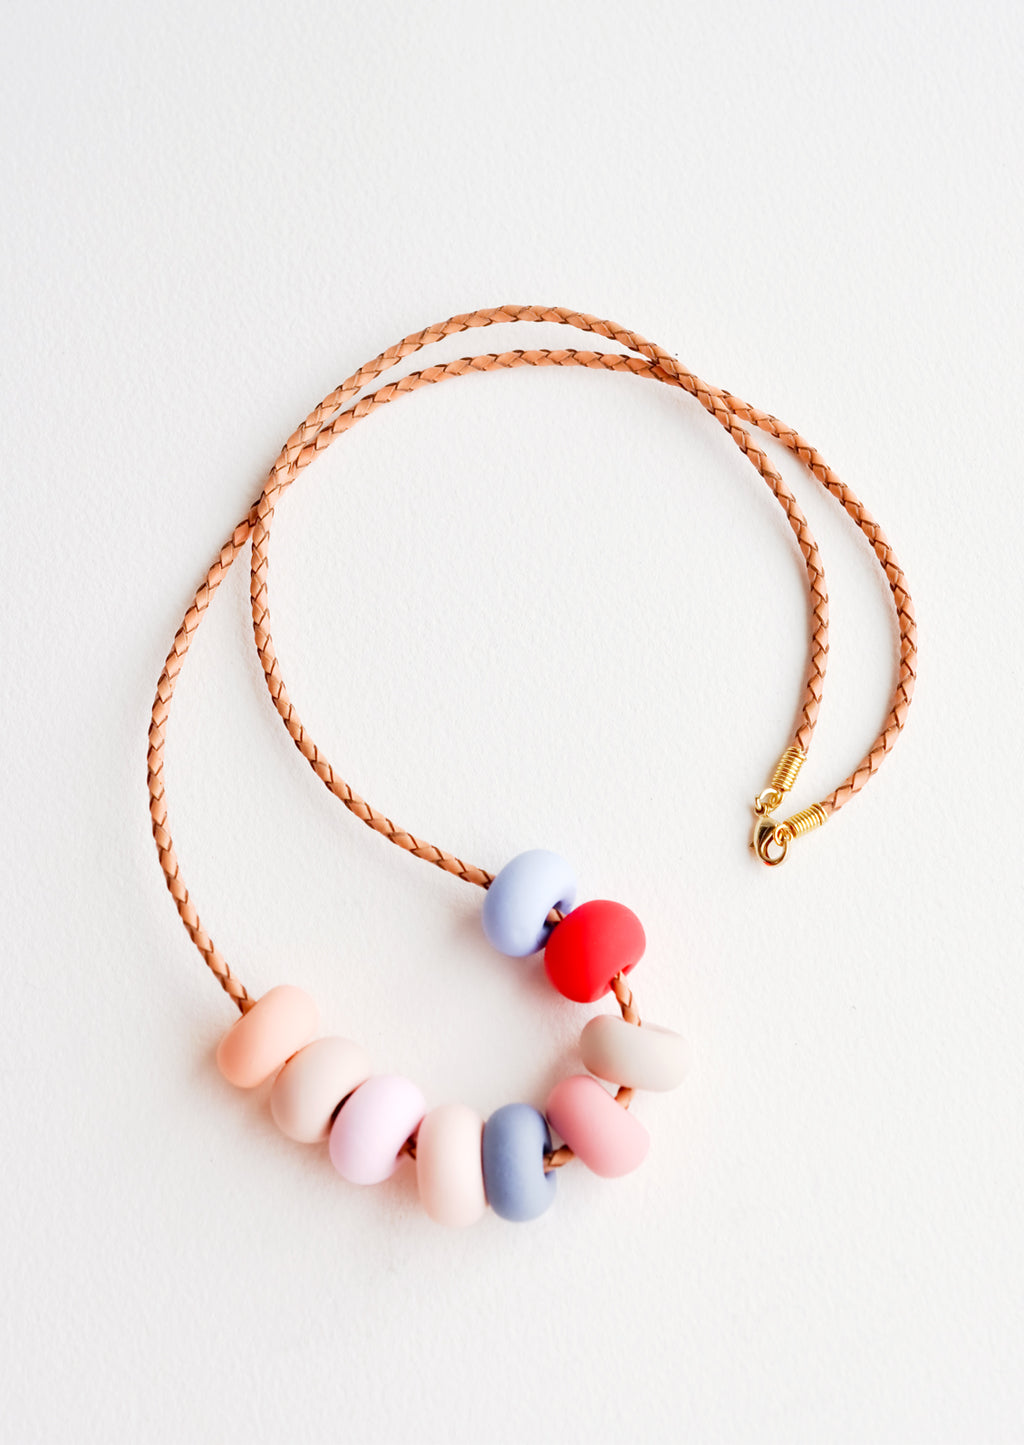 Desert Rose: Woven leather cord necklace with gold clasp and rounded clay beads tans, pinks, red, and blues.